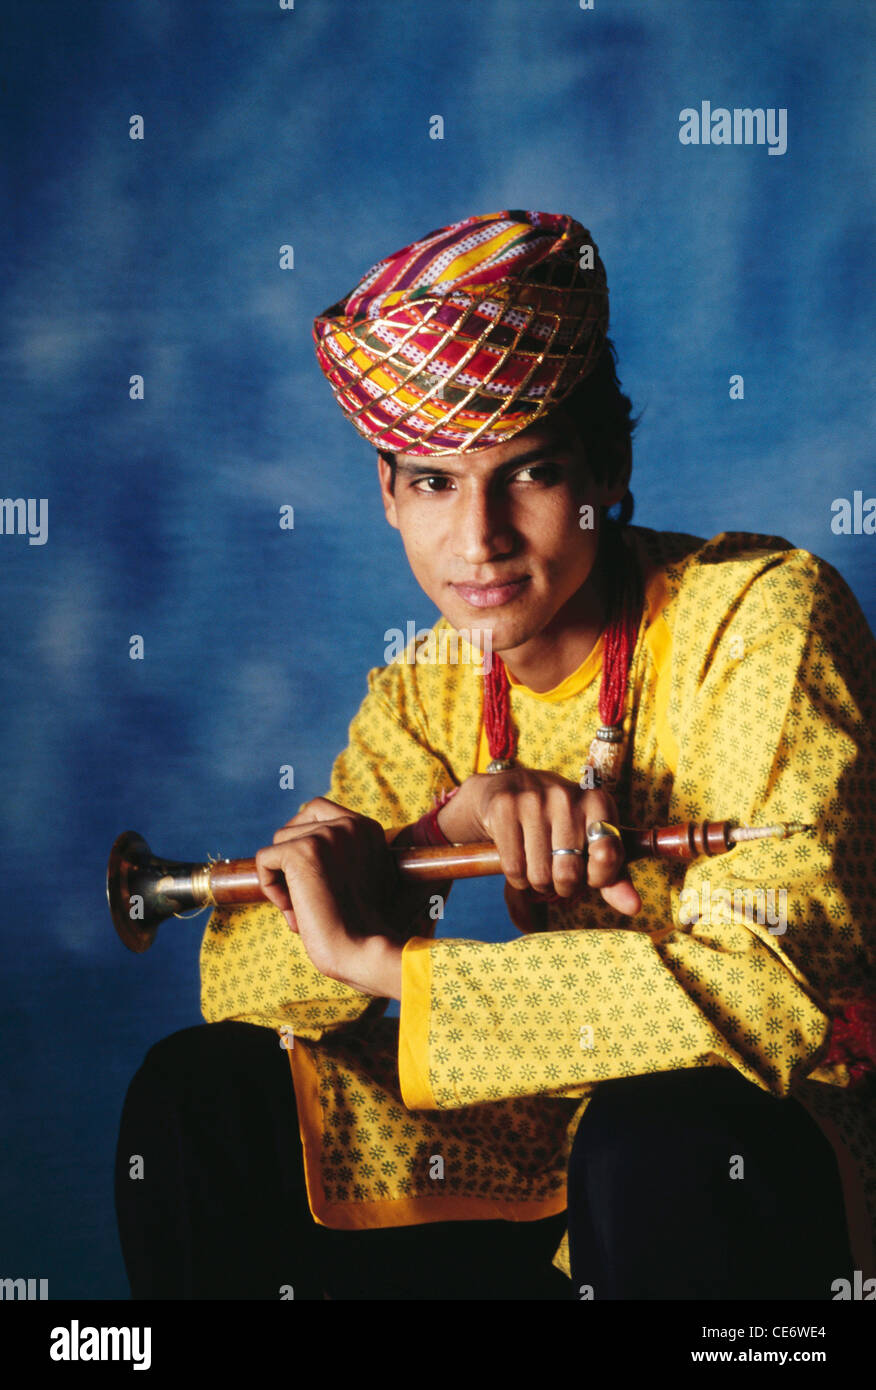 BDR 83387 : portrait of indian rajasthani folk musician posing with wind musical instrument shehnai rajasthan india Stock Photo